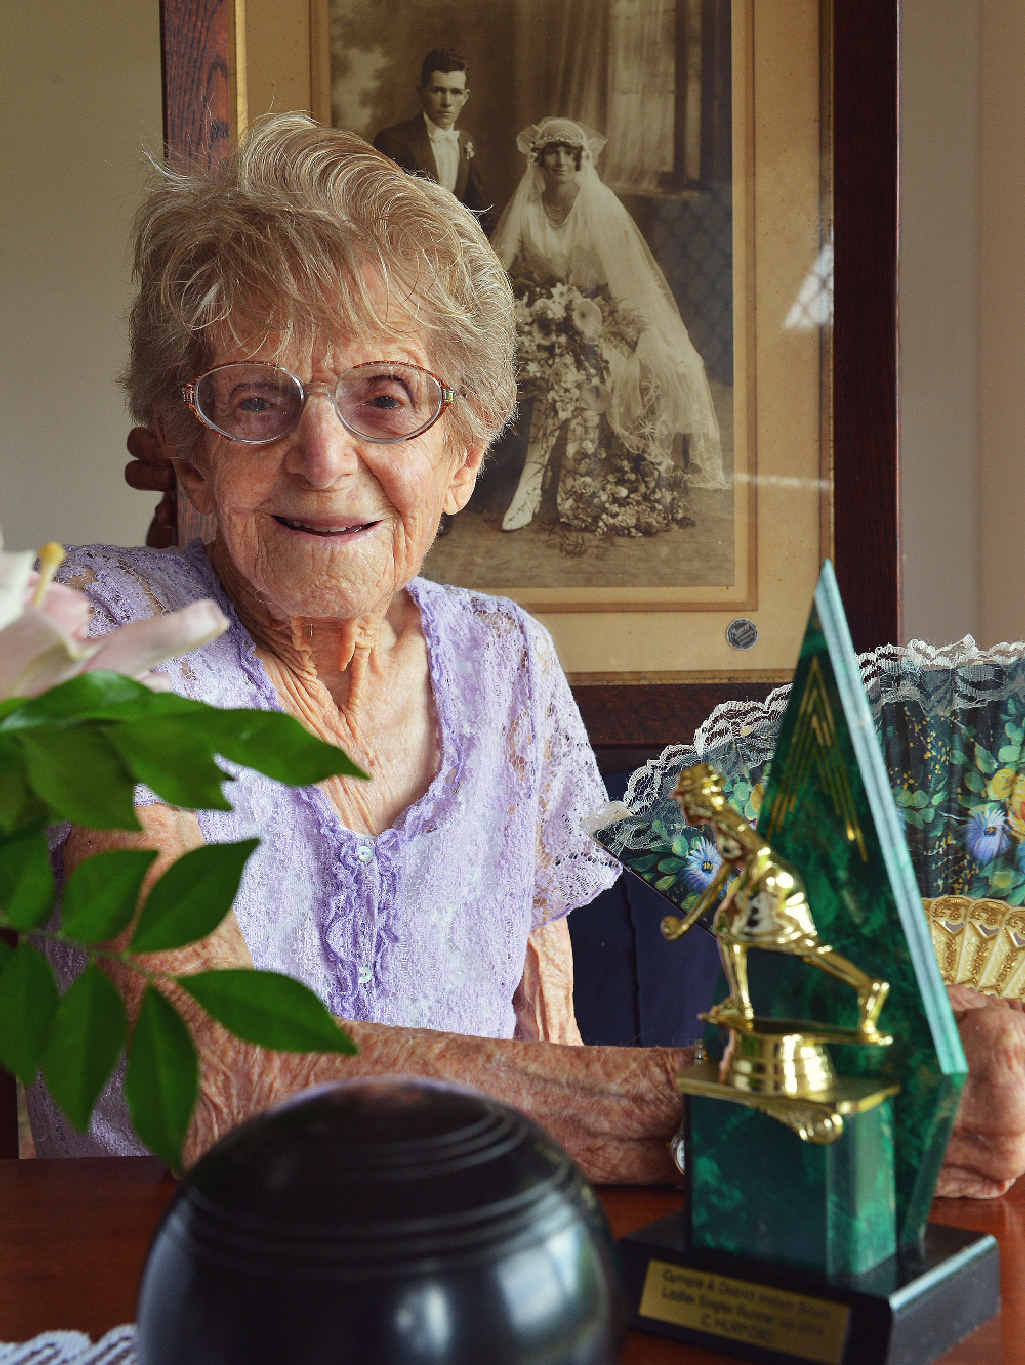 BIRTHDAY GIRL: Charlotte 'Lottie' Hurford celebrated her 105th birthday on December 31, 2014. In the background is a portrait of Lottie's wedding day to husband Phillip on July 22, 1931.